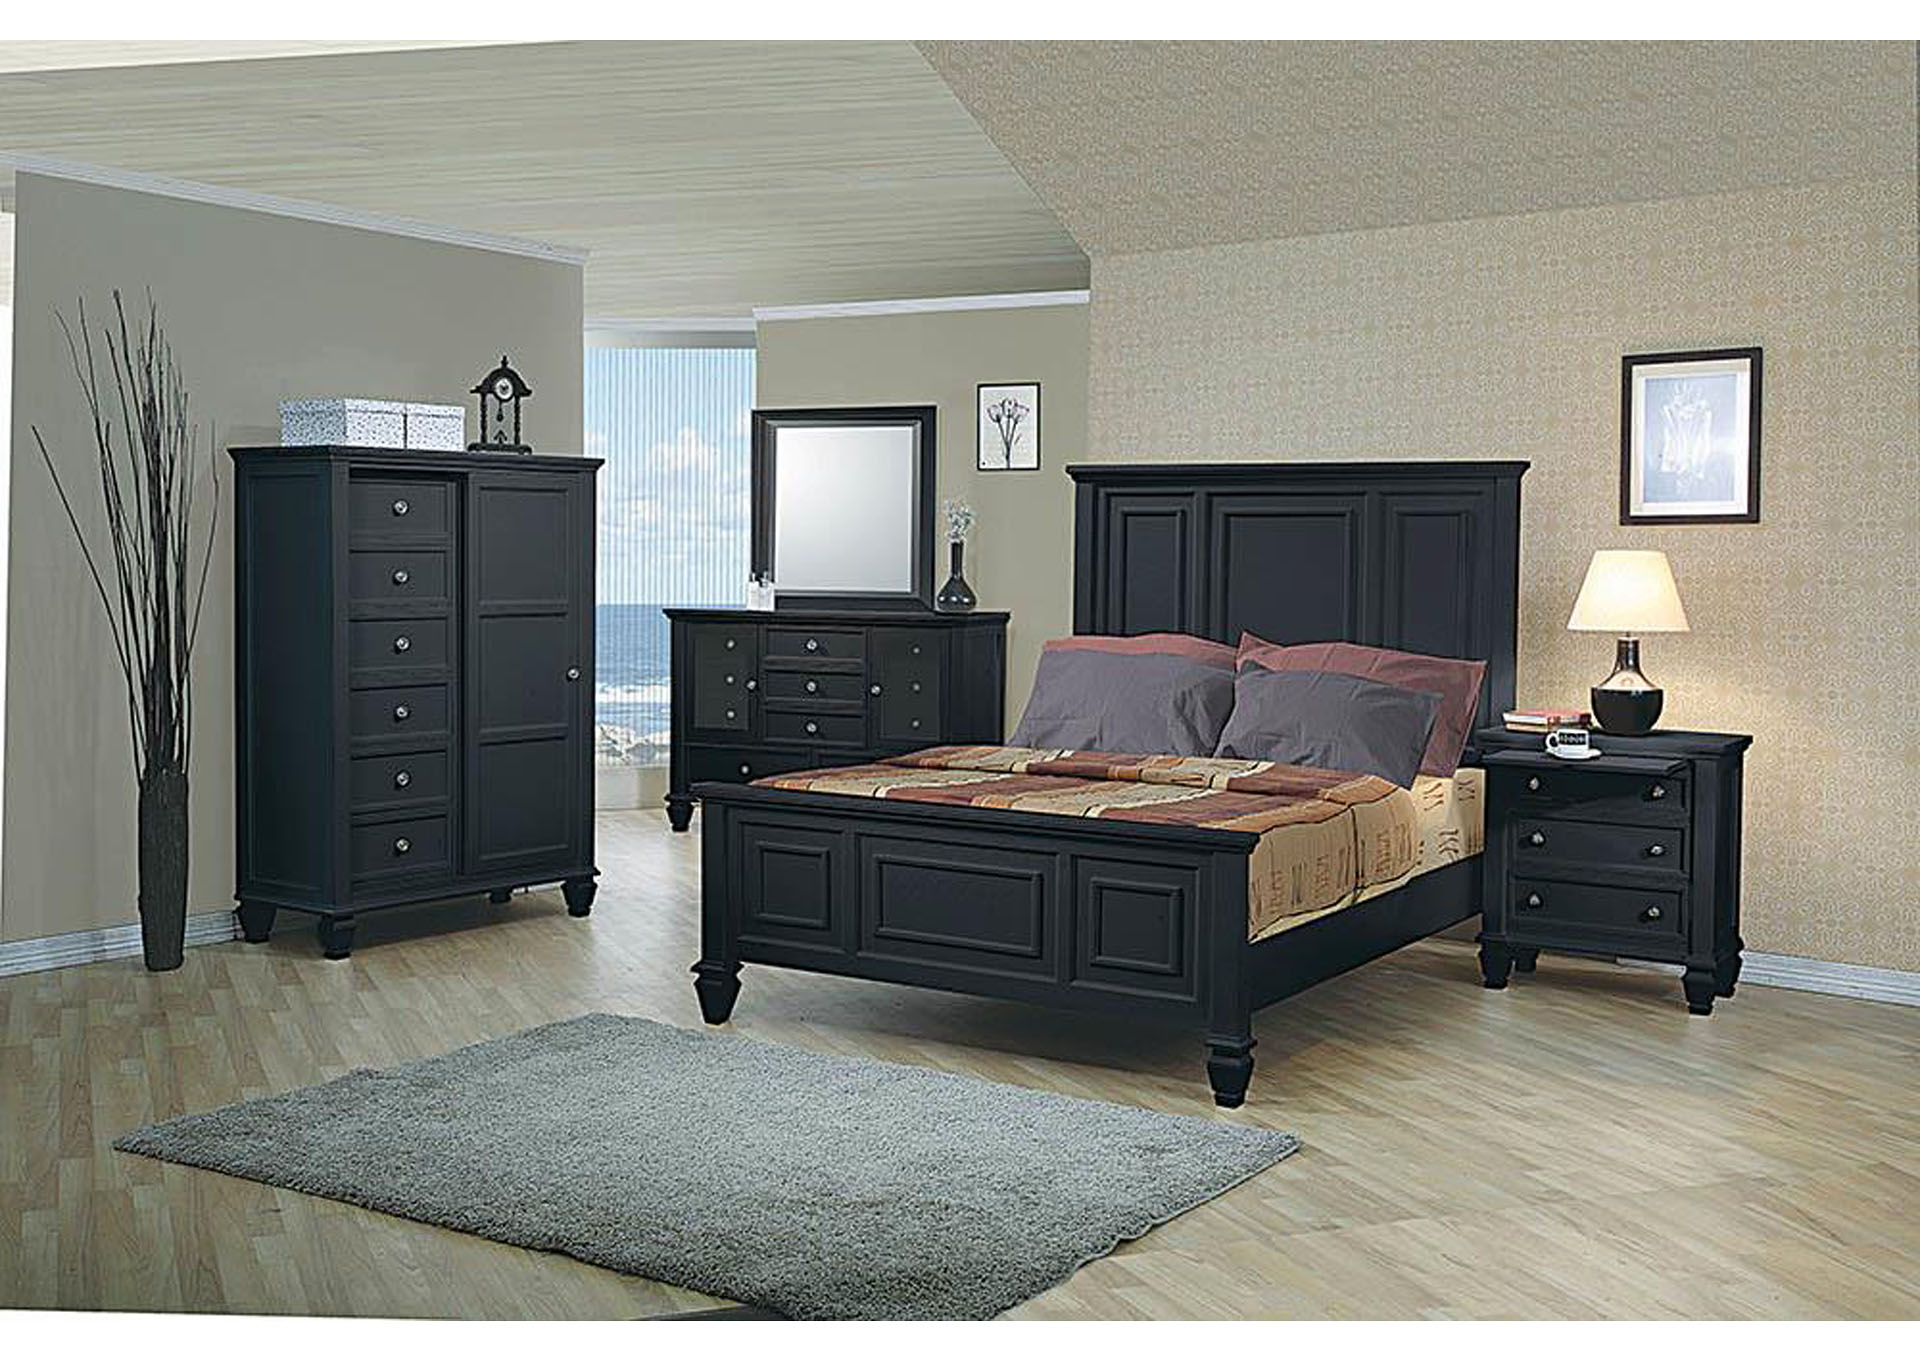 Sandy Beach Black King Bed,Coaster Furniture